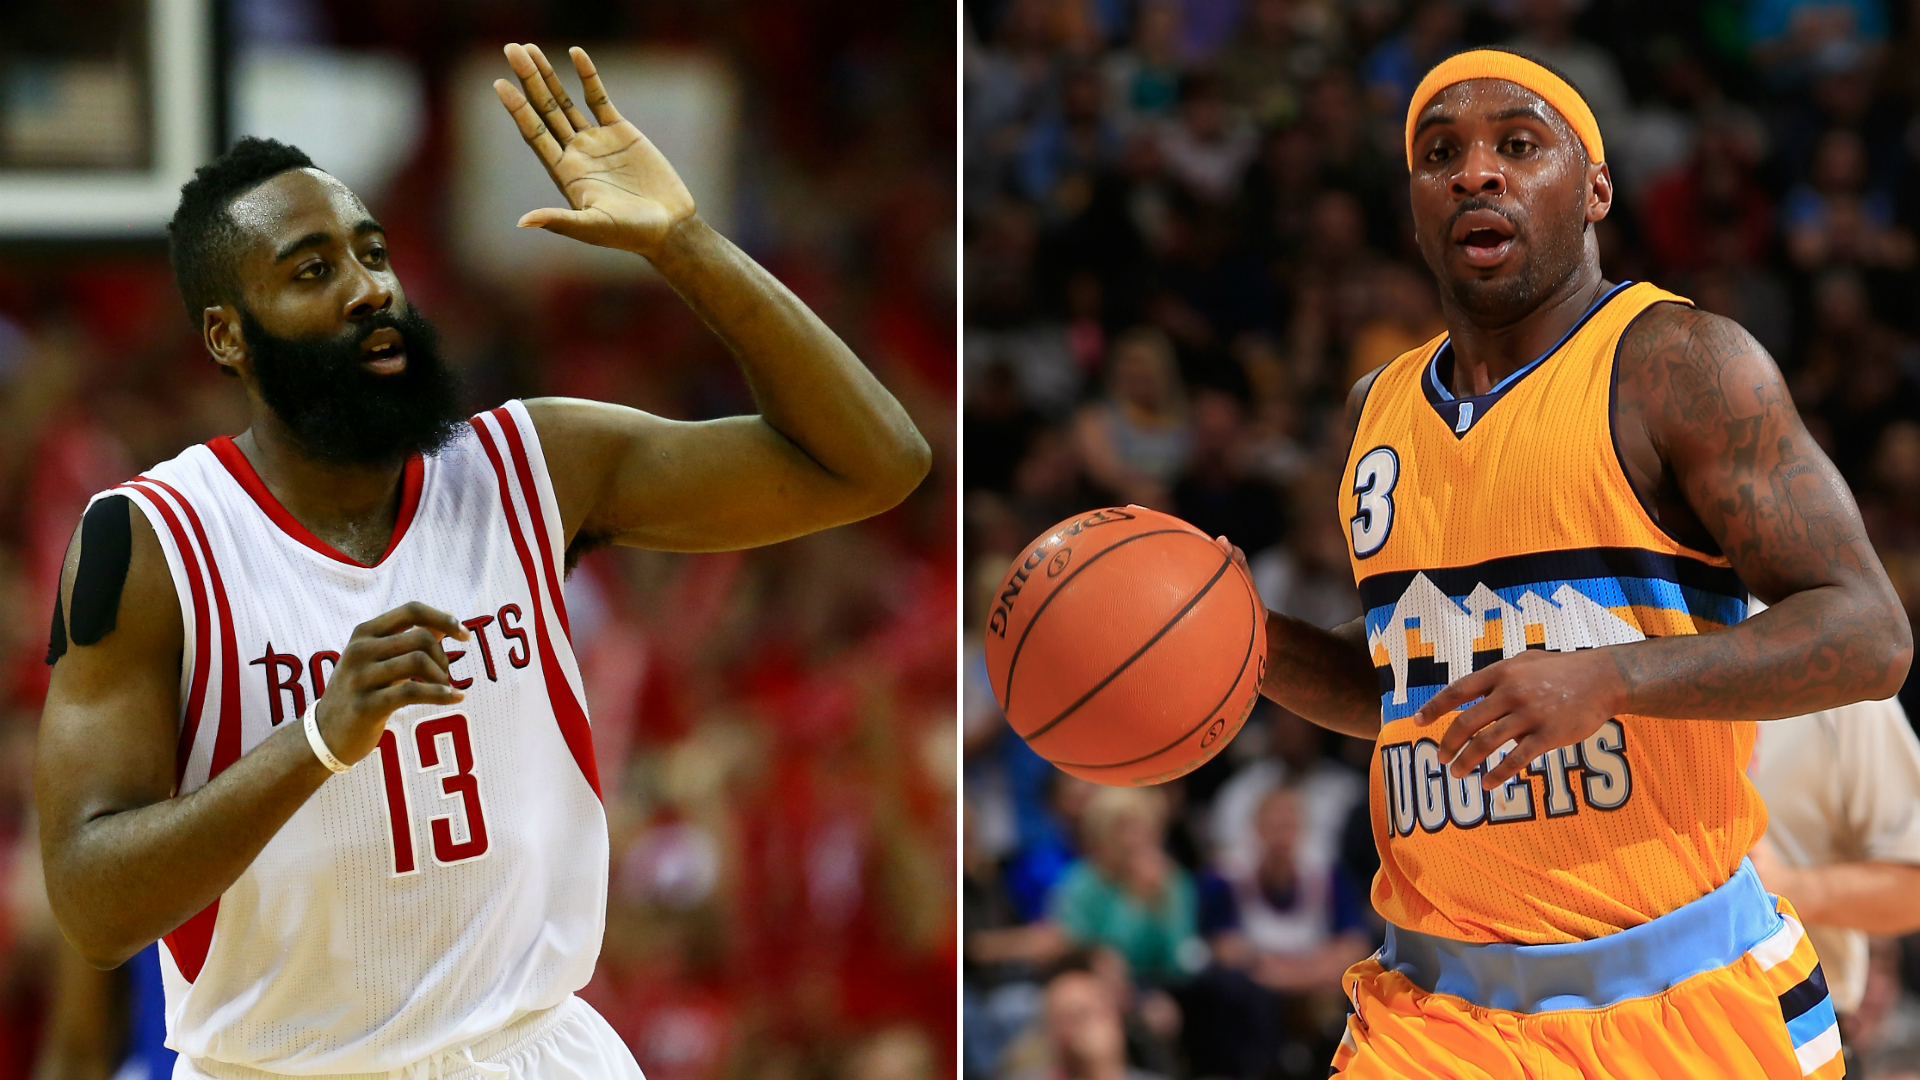 Nba james harden could be an even better scorer with ty lawson on